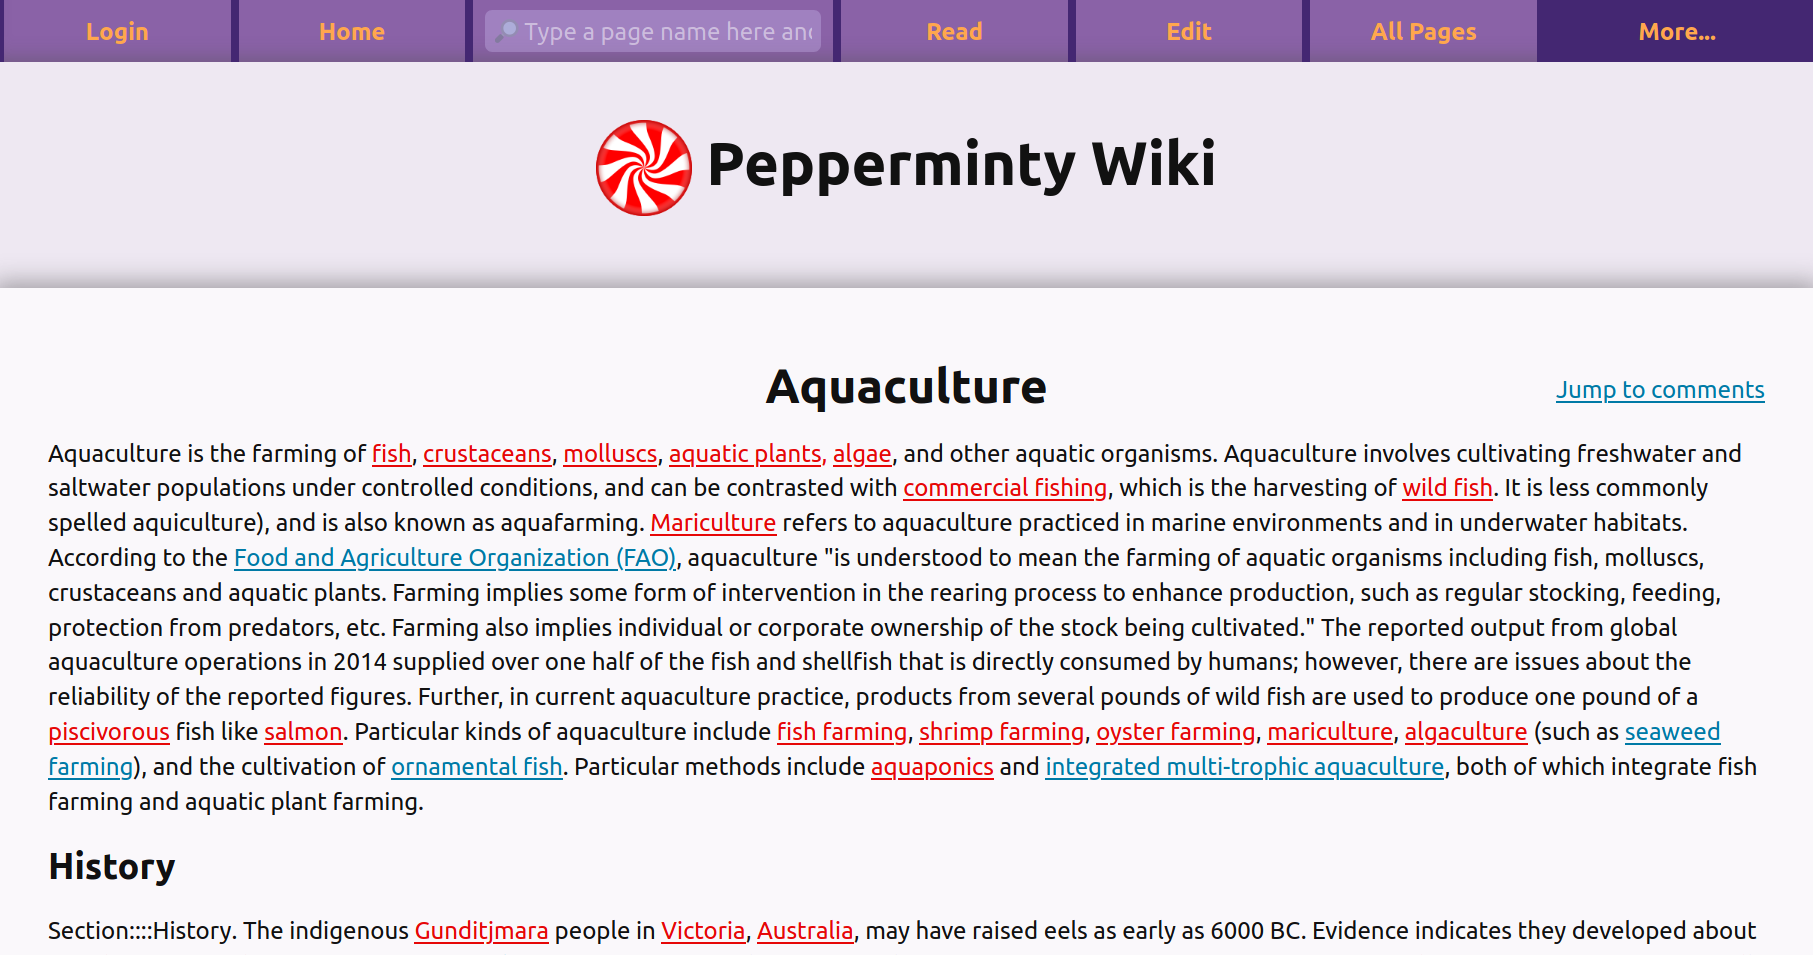 A screenshot of Pepperminty Wiki